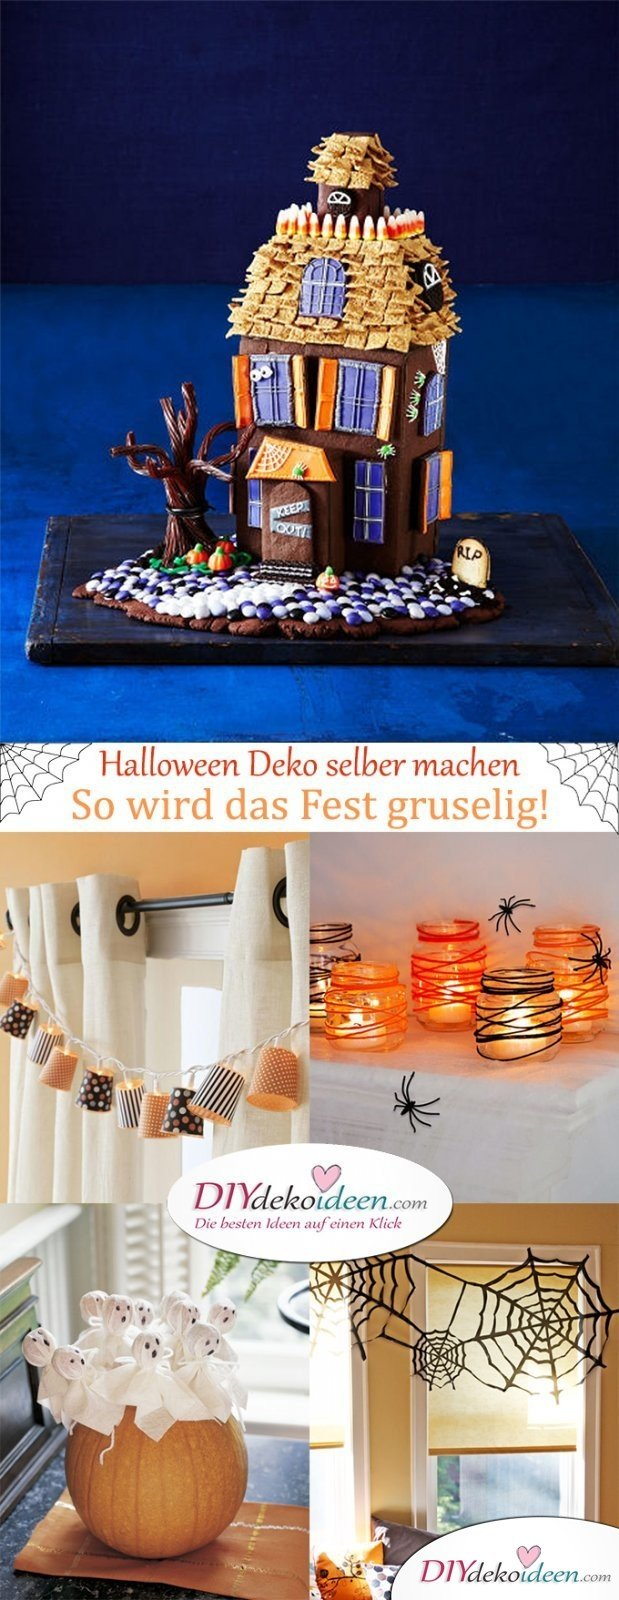 Halloween Deko selber machen - So it is going to be horrible!